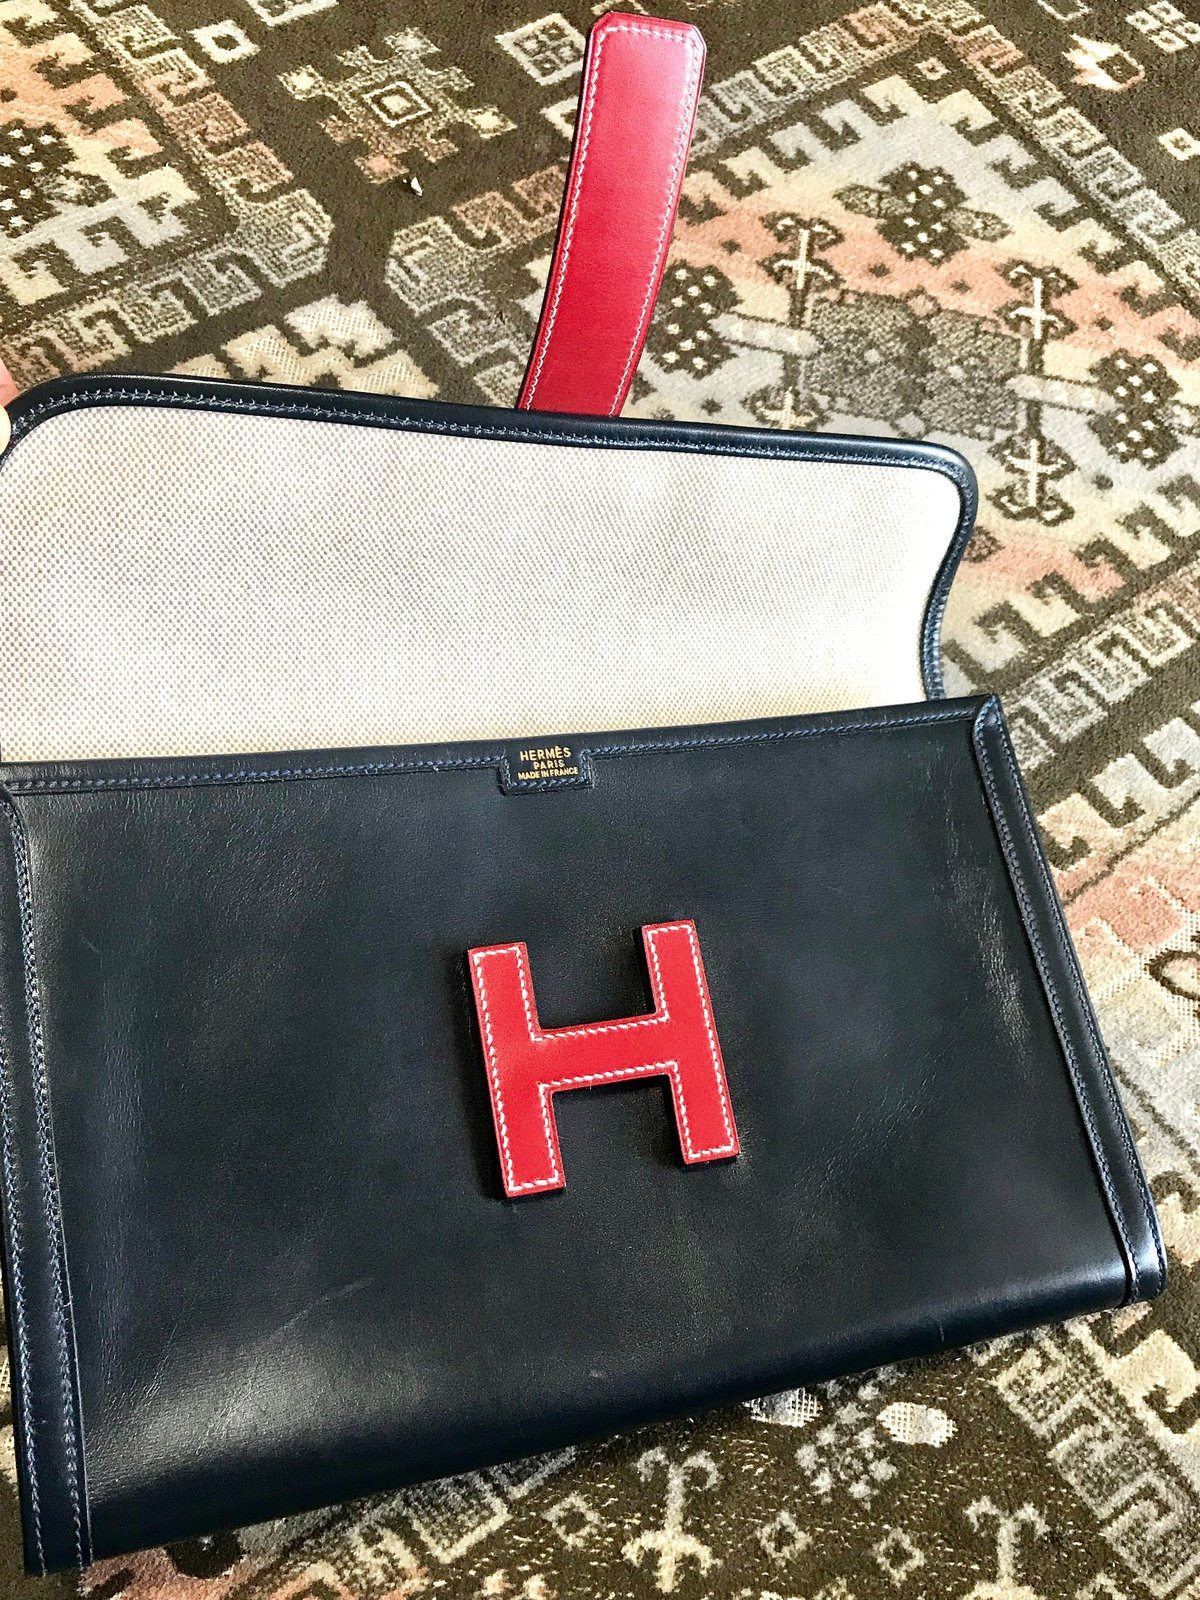 Vintage HERMES navy and red jige PM boxcalf leather document case, portfolio bag